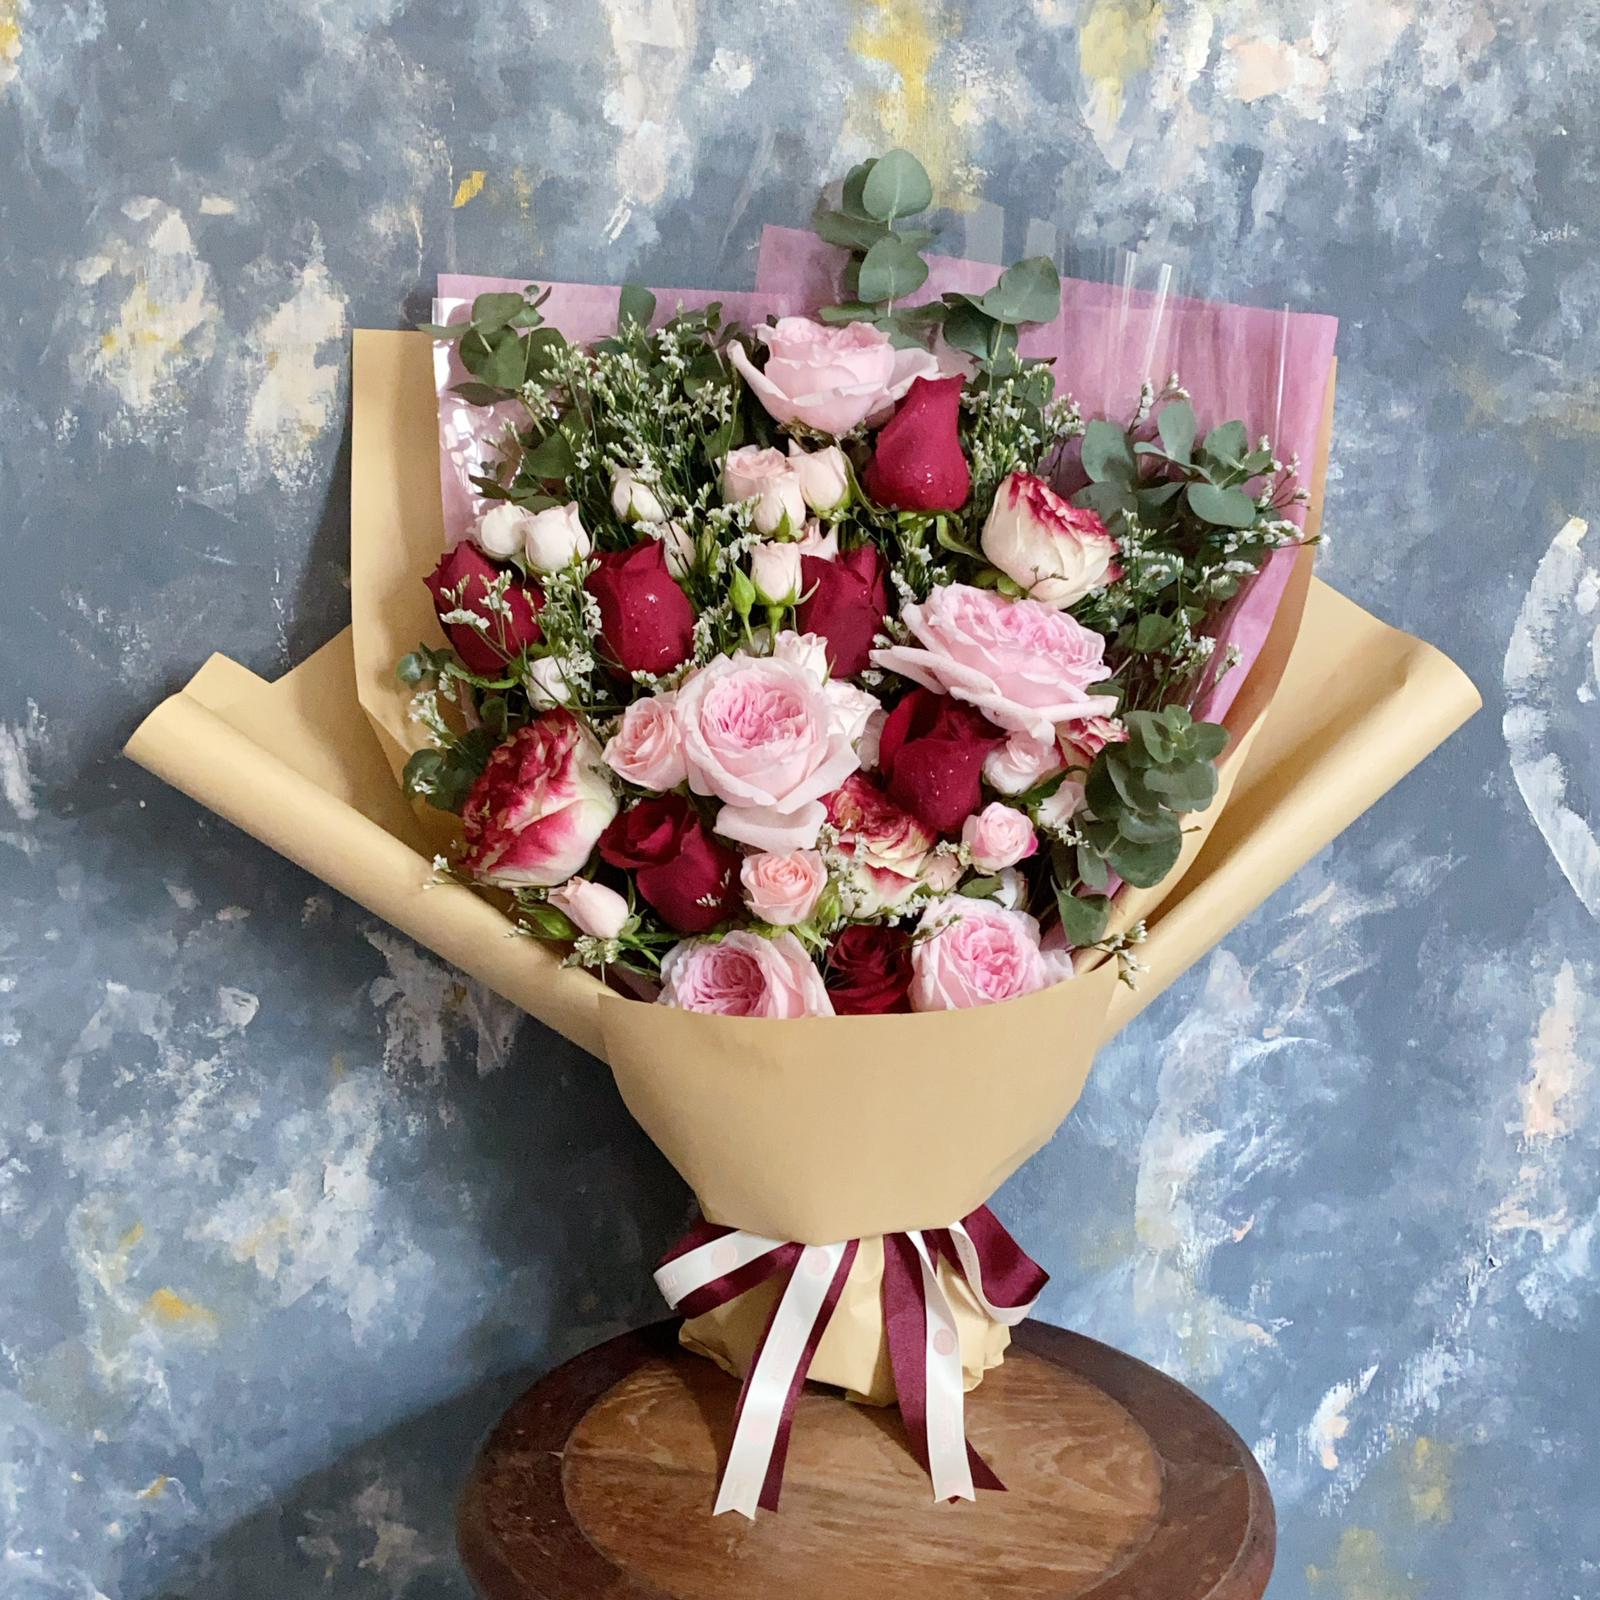 Roses Enmasse - Mixed Rose bouquet - Flourish by Charlene